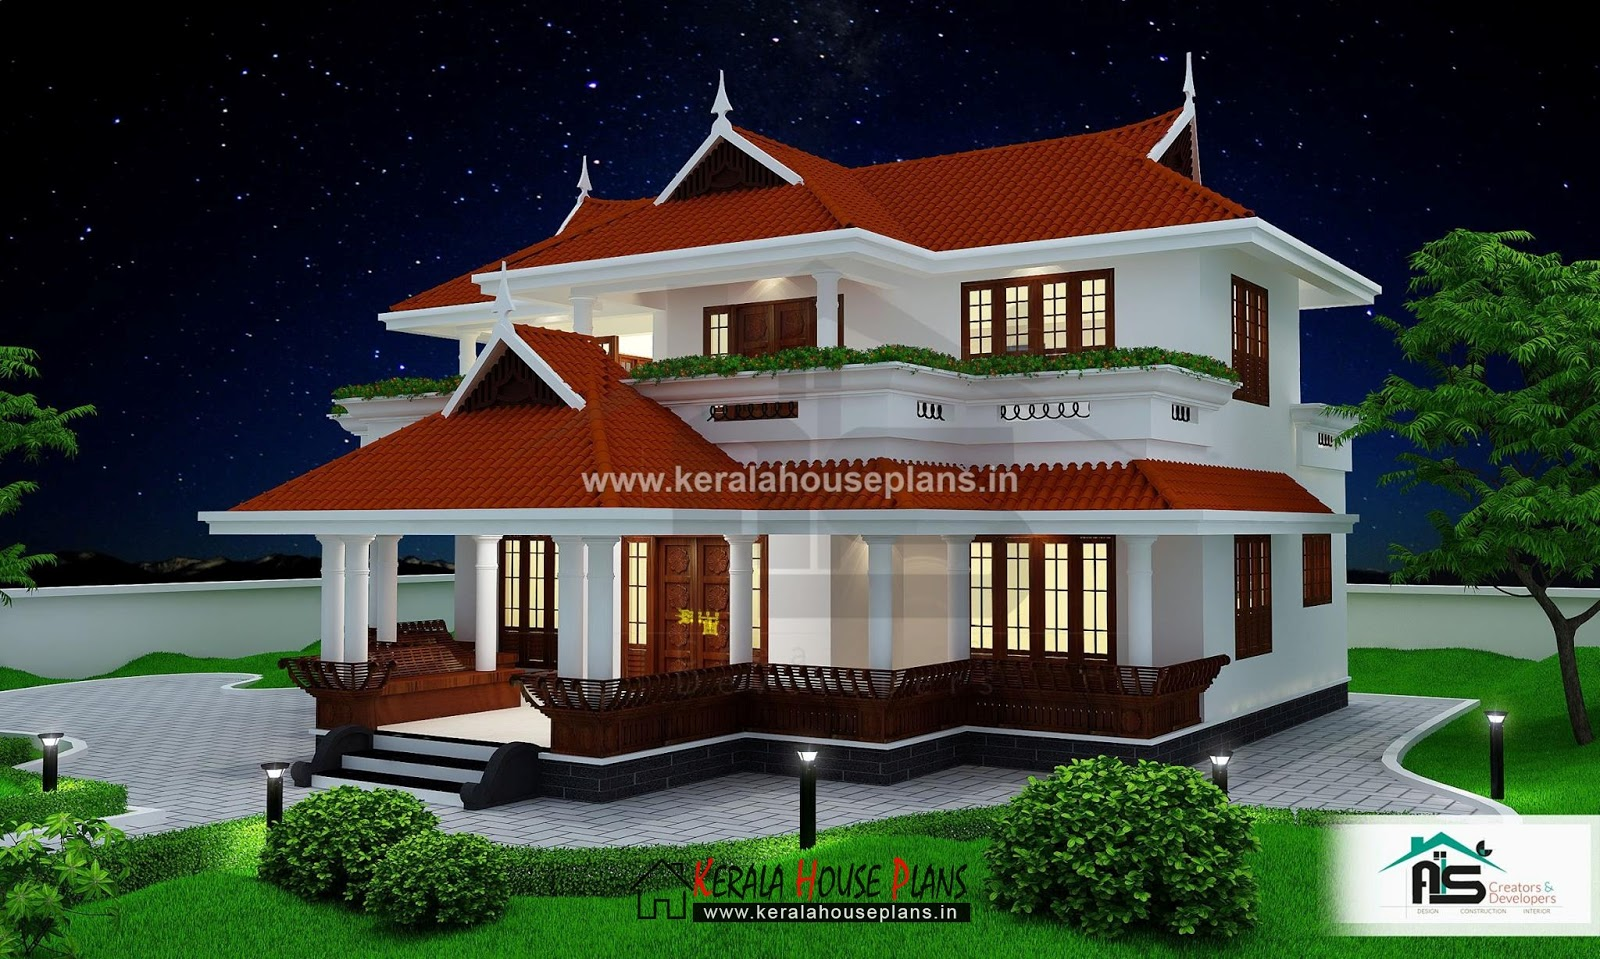 Kerala traditional veedu home design 28 images for Veedu interior designs